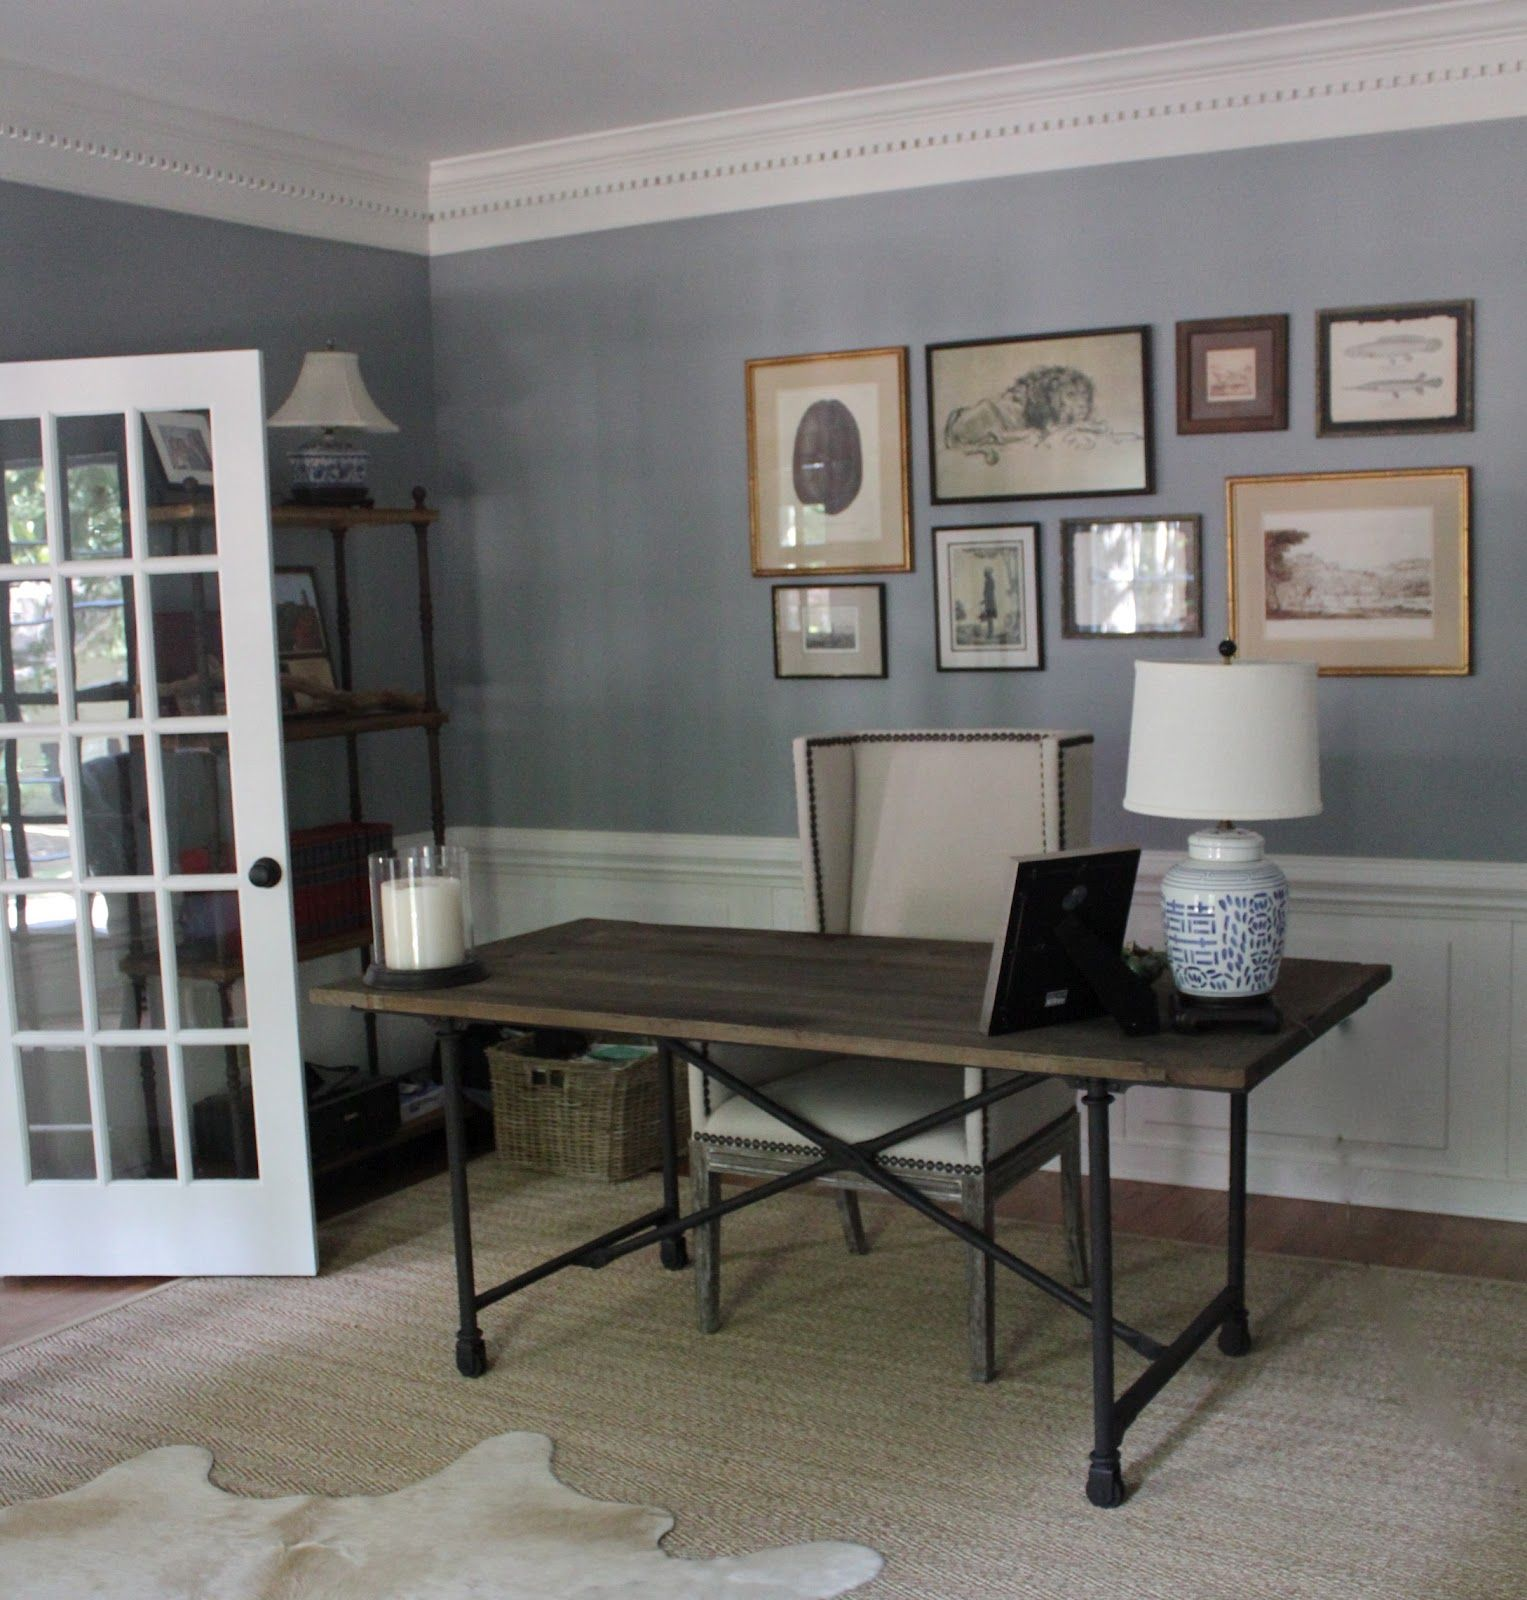 Benjamin Moore Adagio Guest Room Color Office Wall Colors Office Paint Colors Interior Paint Colors For Living Room